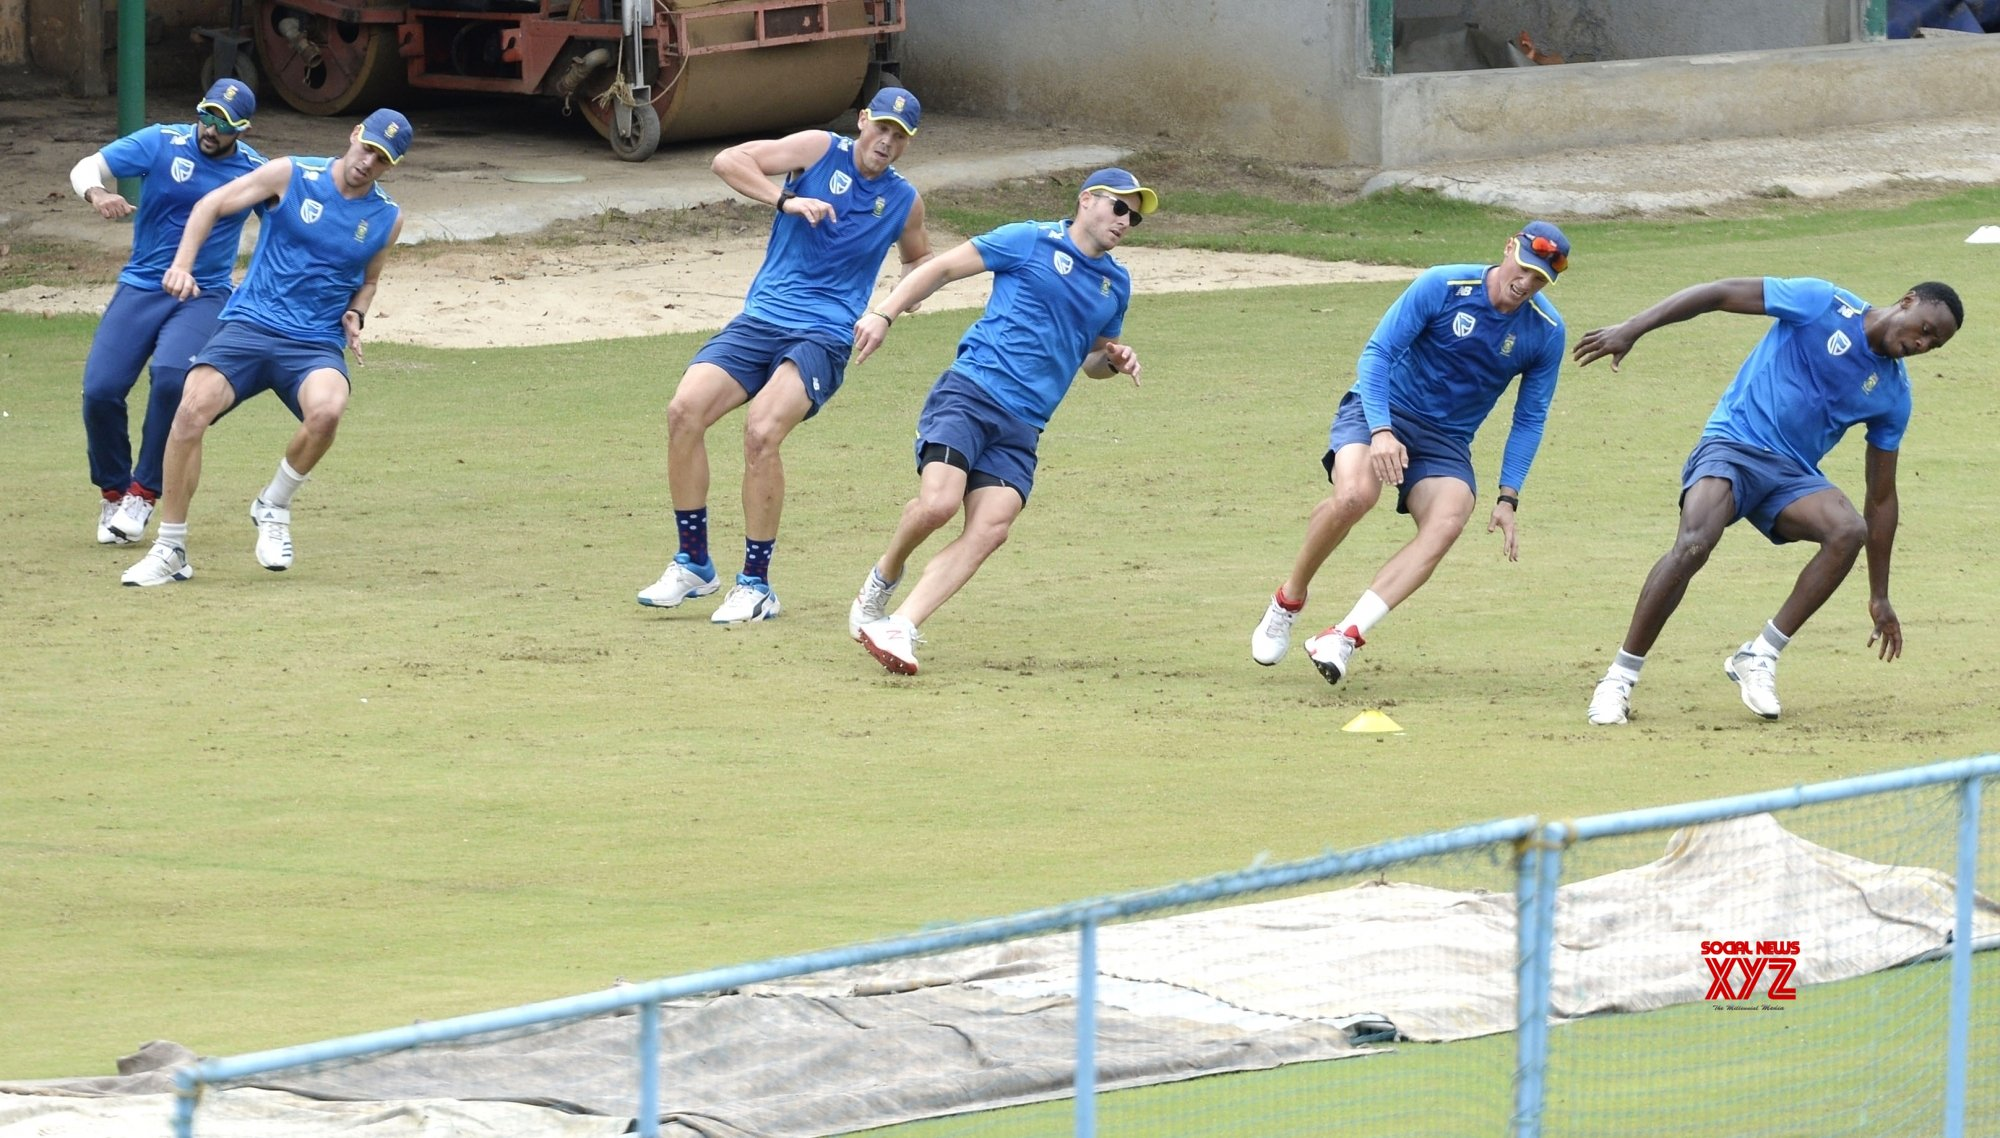 South Africa male cricketers return to training